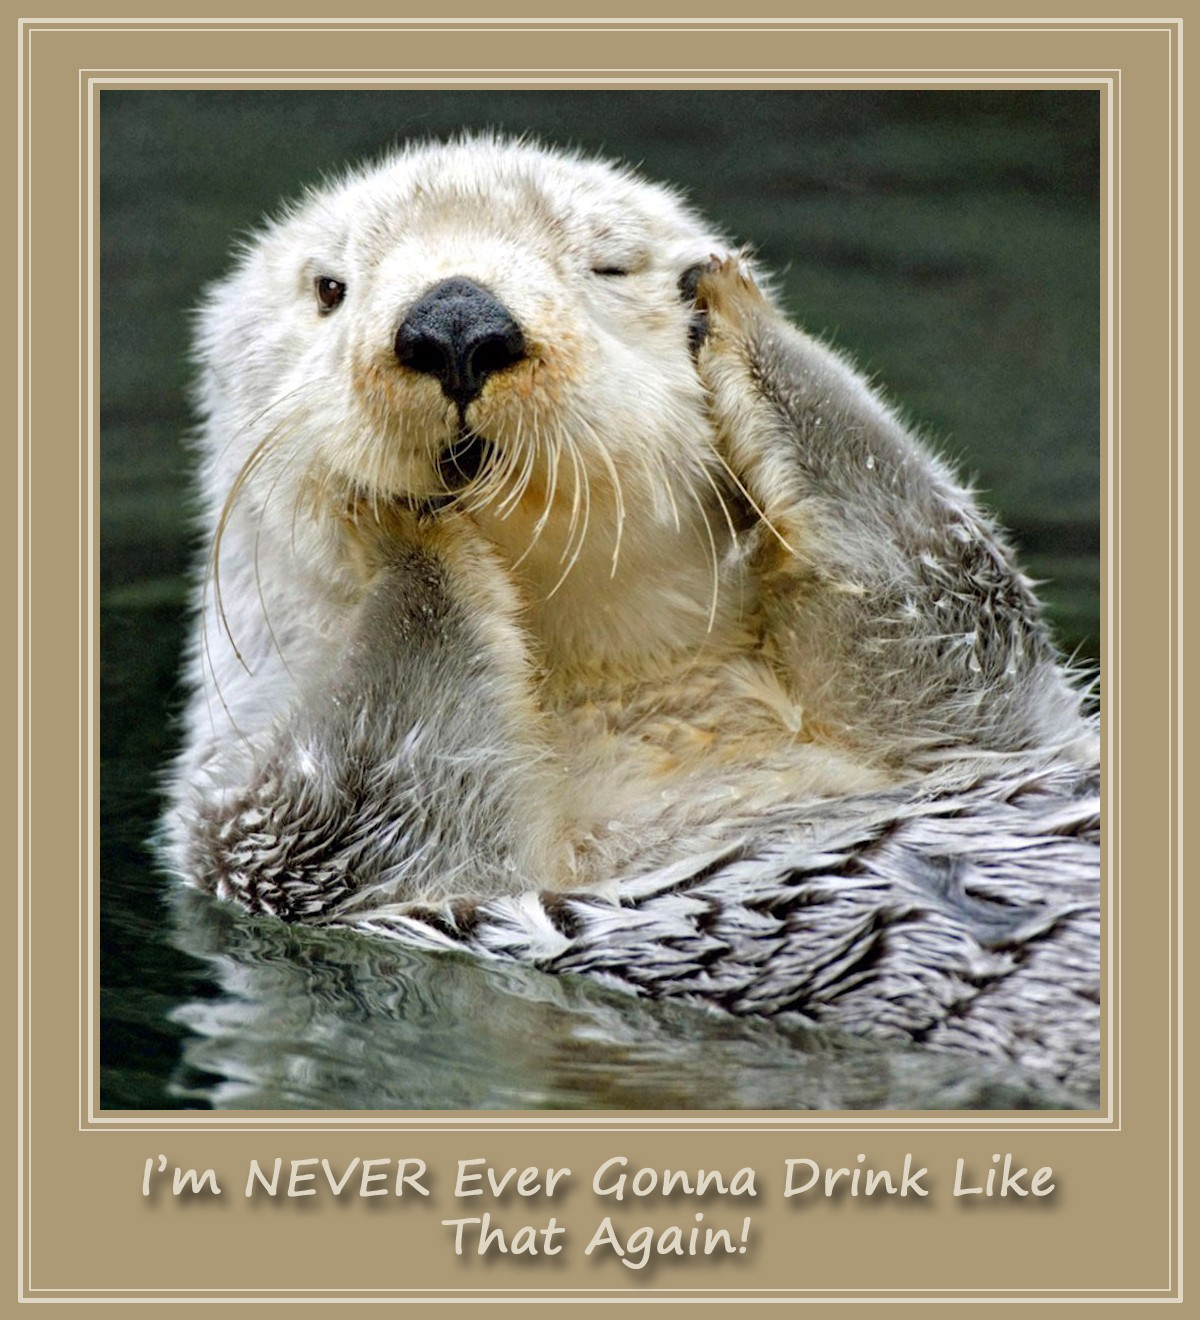 00 Otter. I'm NEVER Gonna Drink Like That Again! 2013